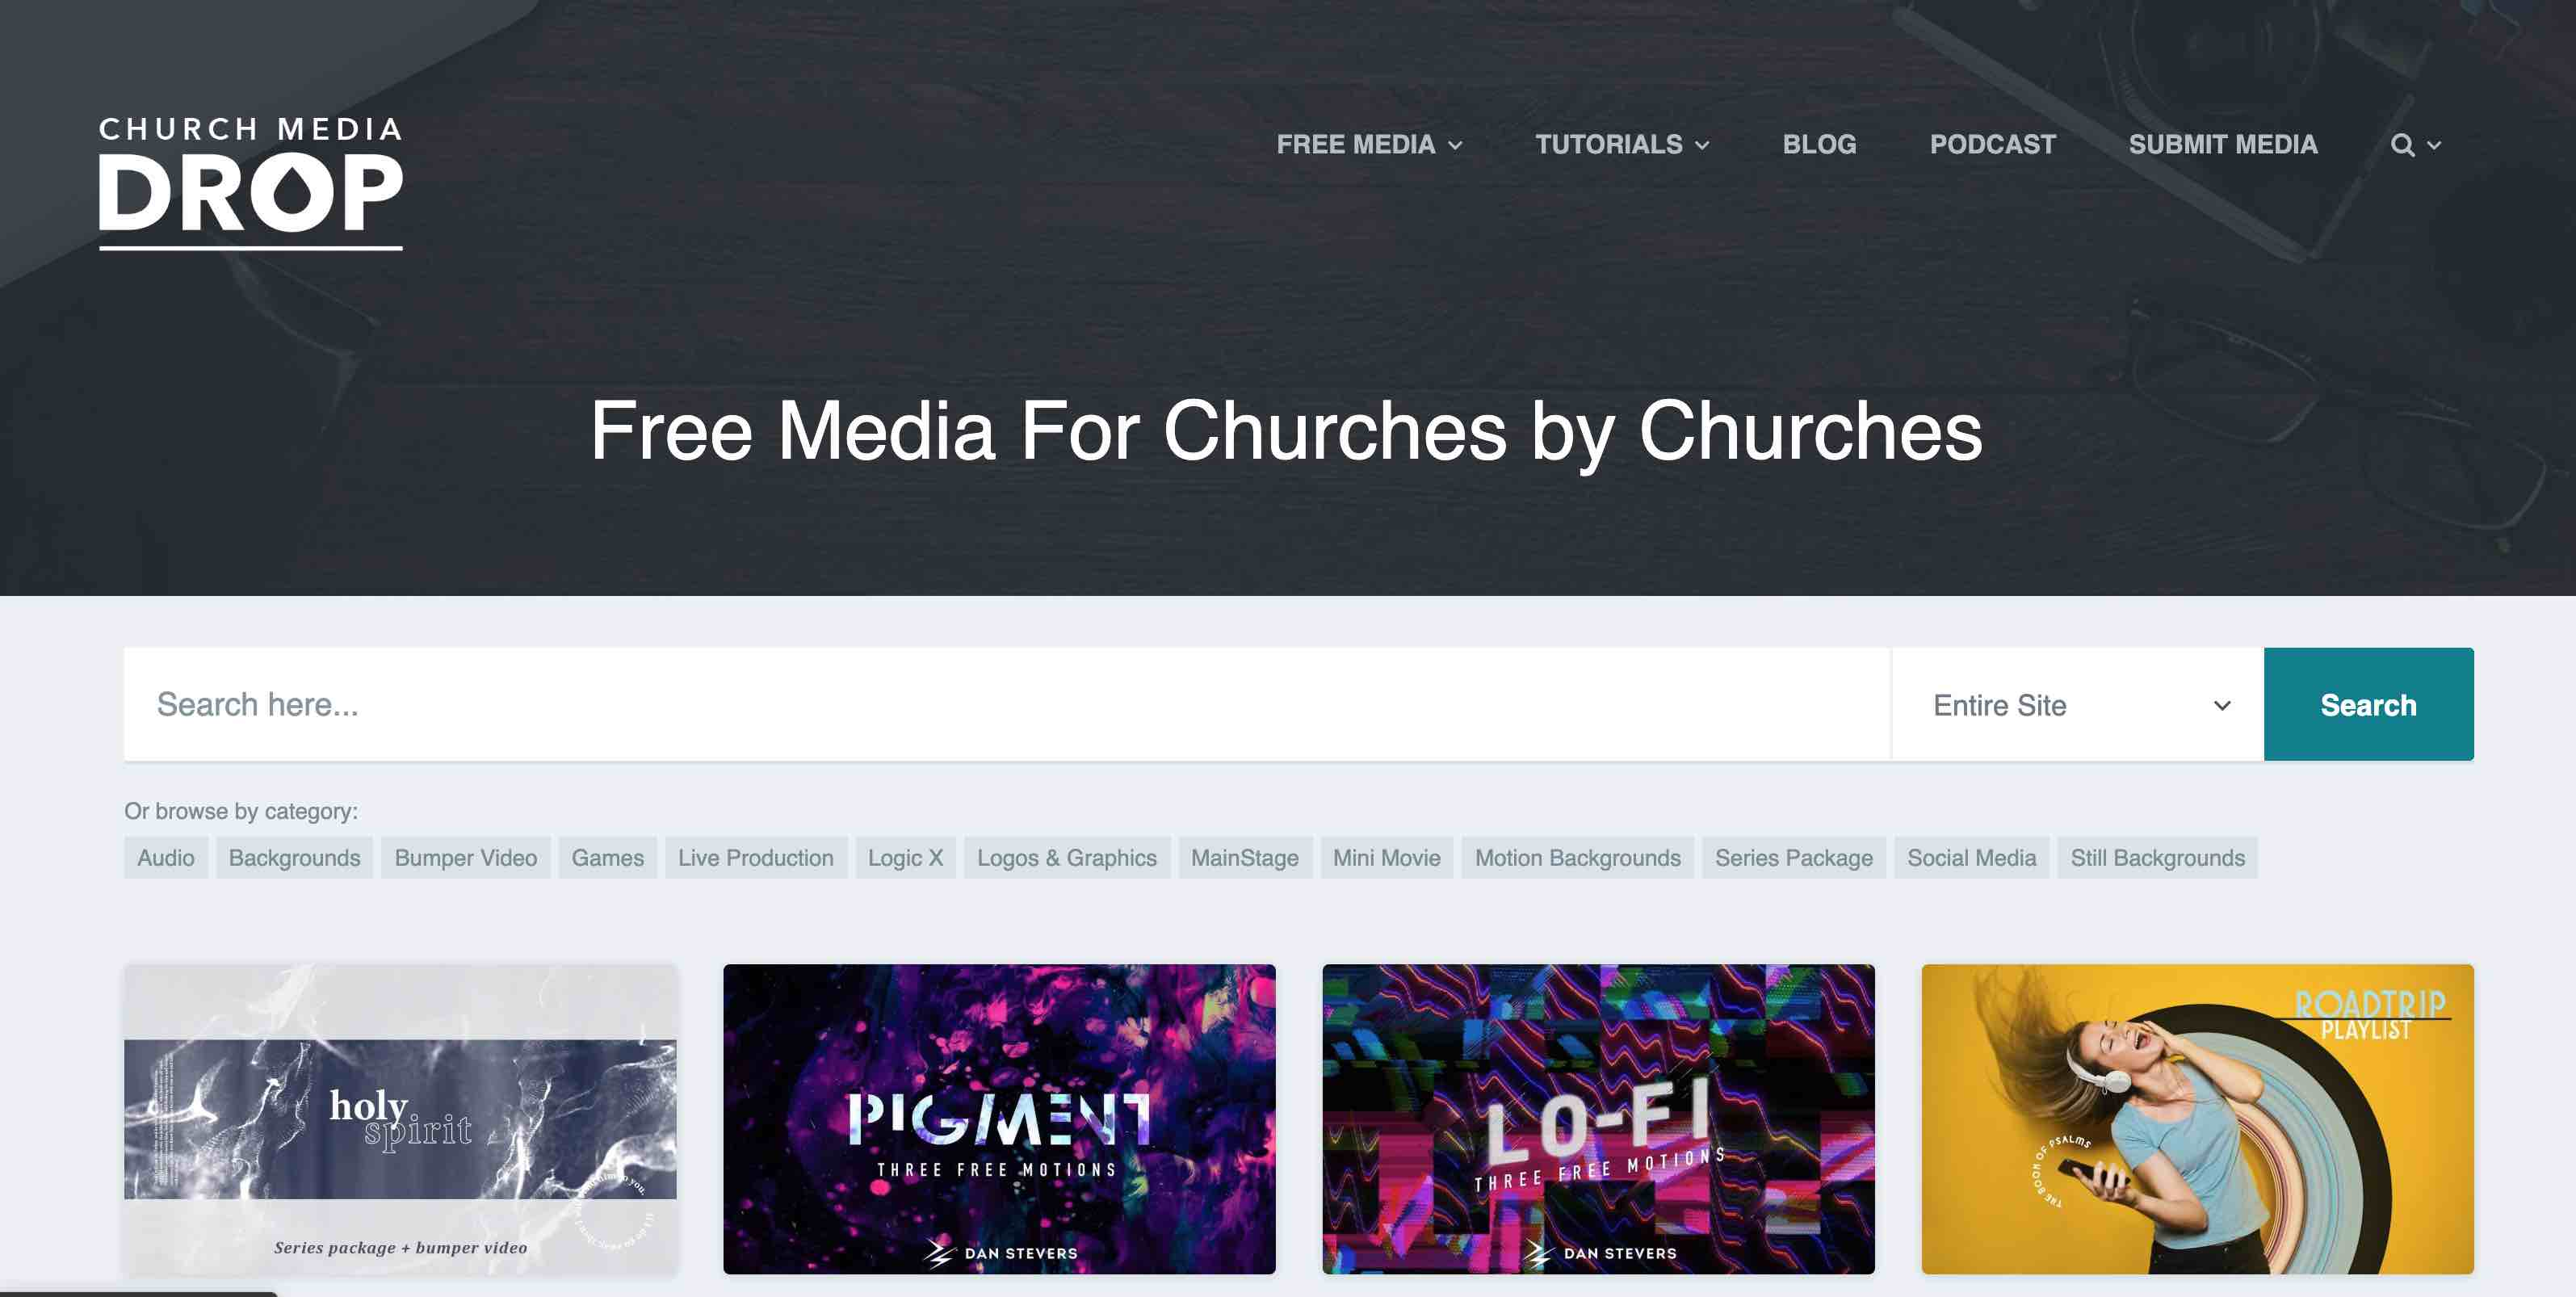 Church Media Drop free media for churches including motion backgrounds